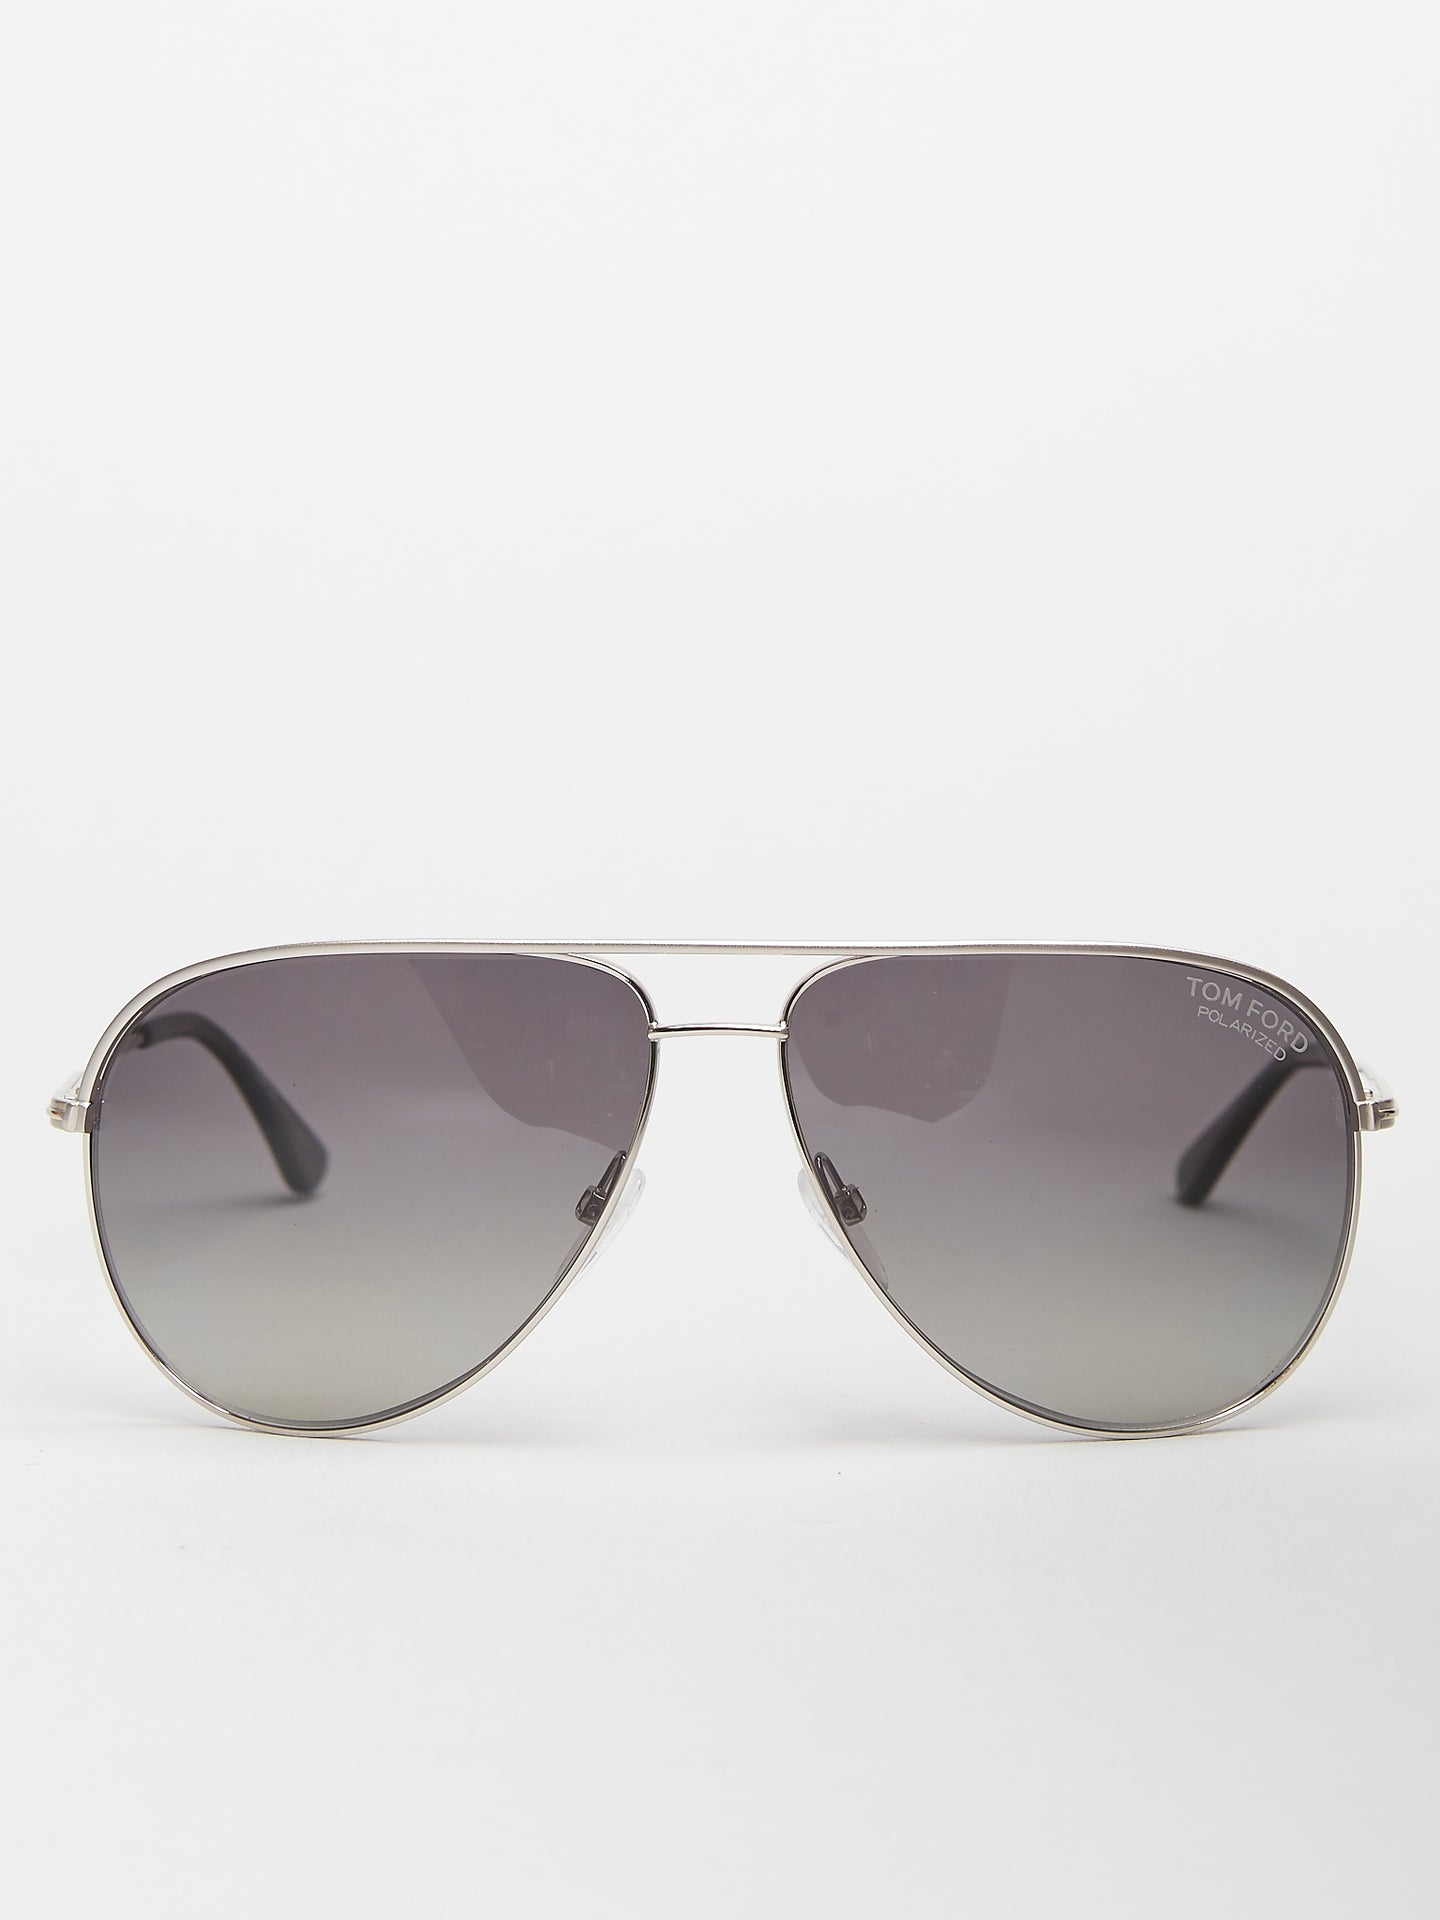 Tom Ford Matt Poladium Aviator (TF0466 17D)